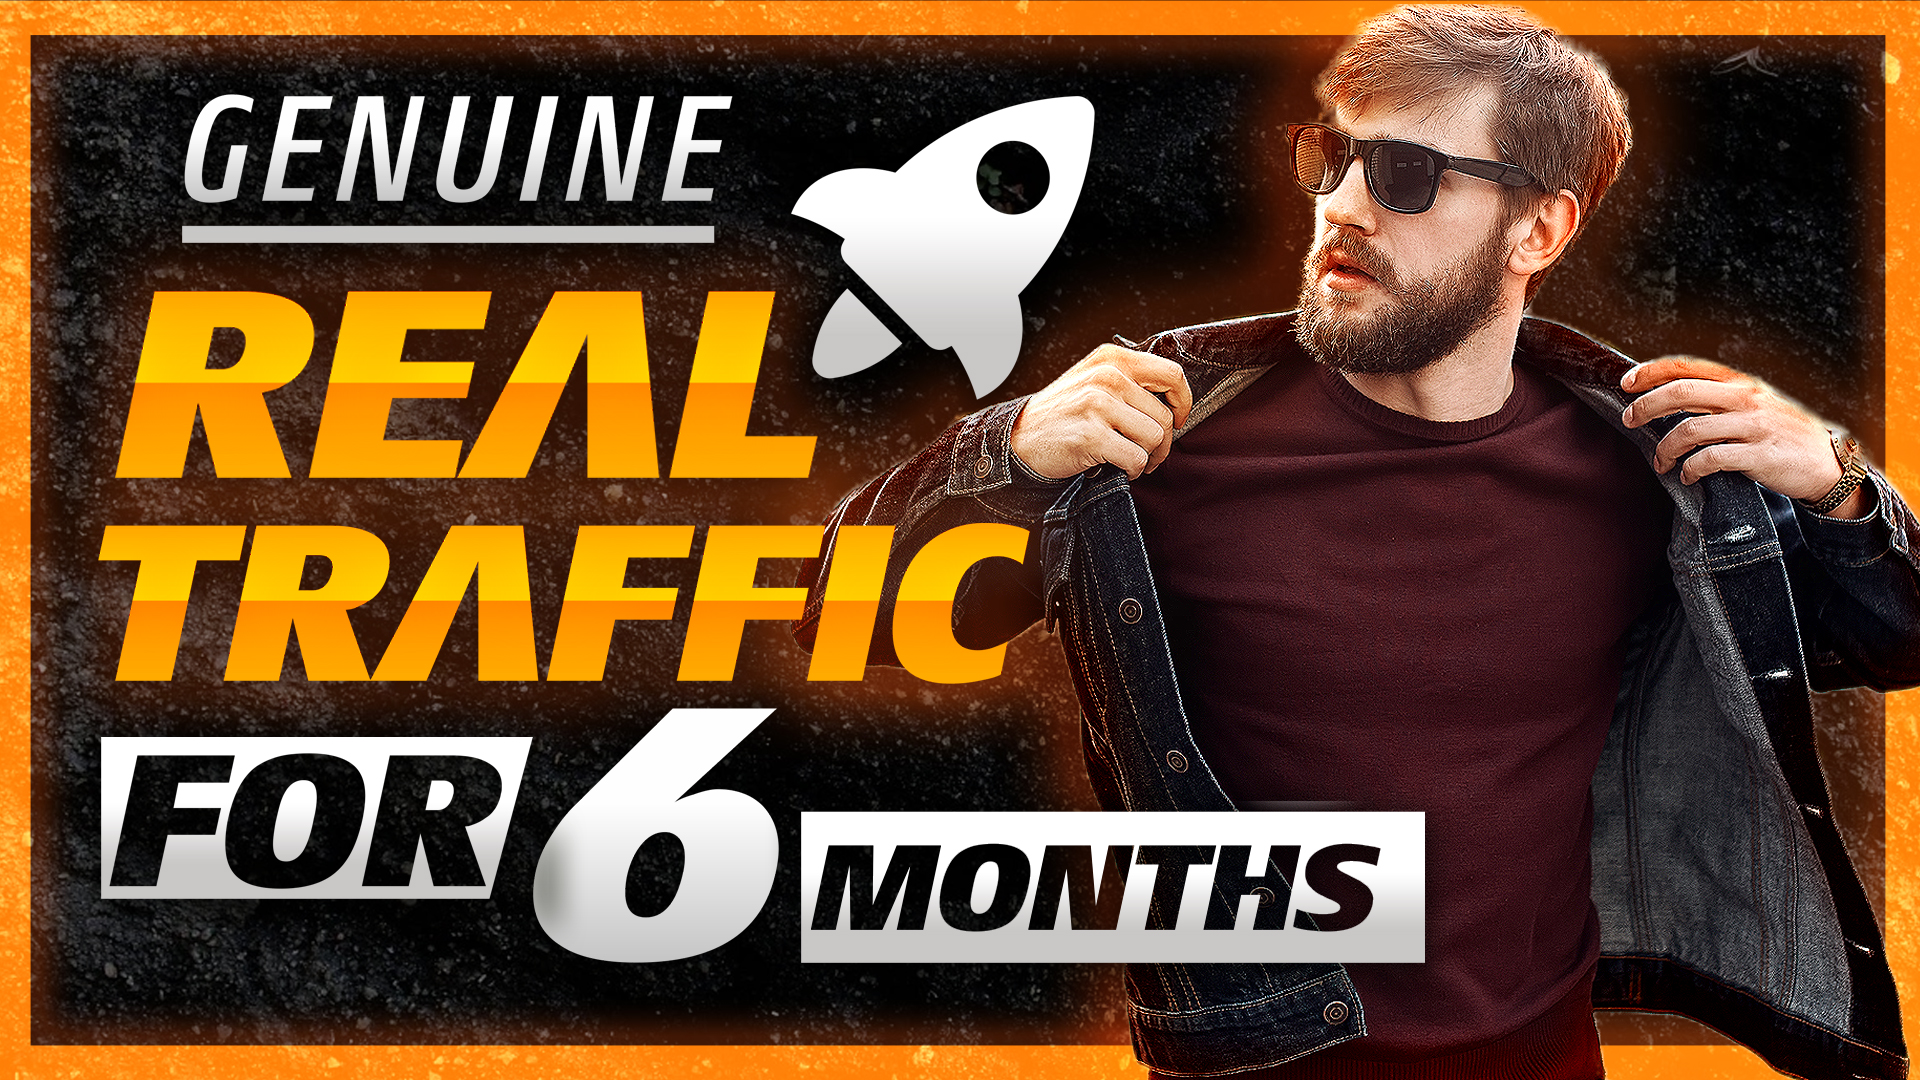 I Will Send Unlimited And Genuine Real Website Traffic For 6 Months